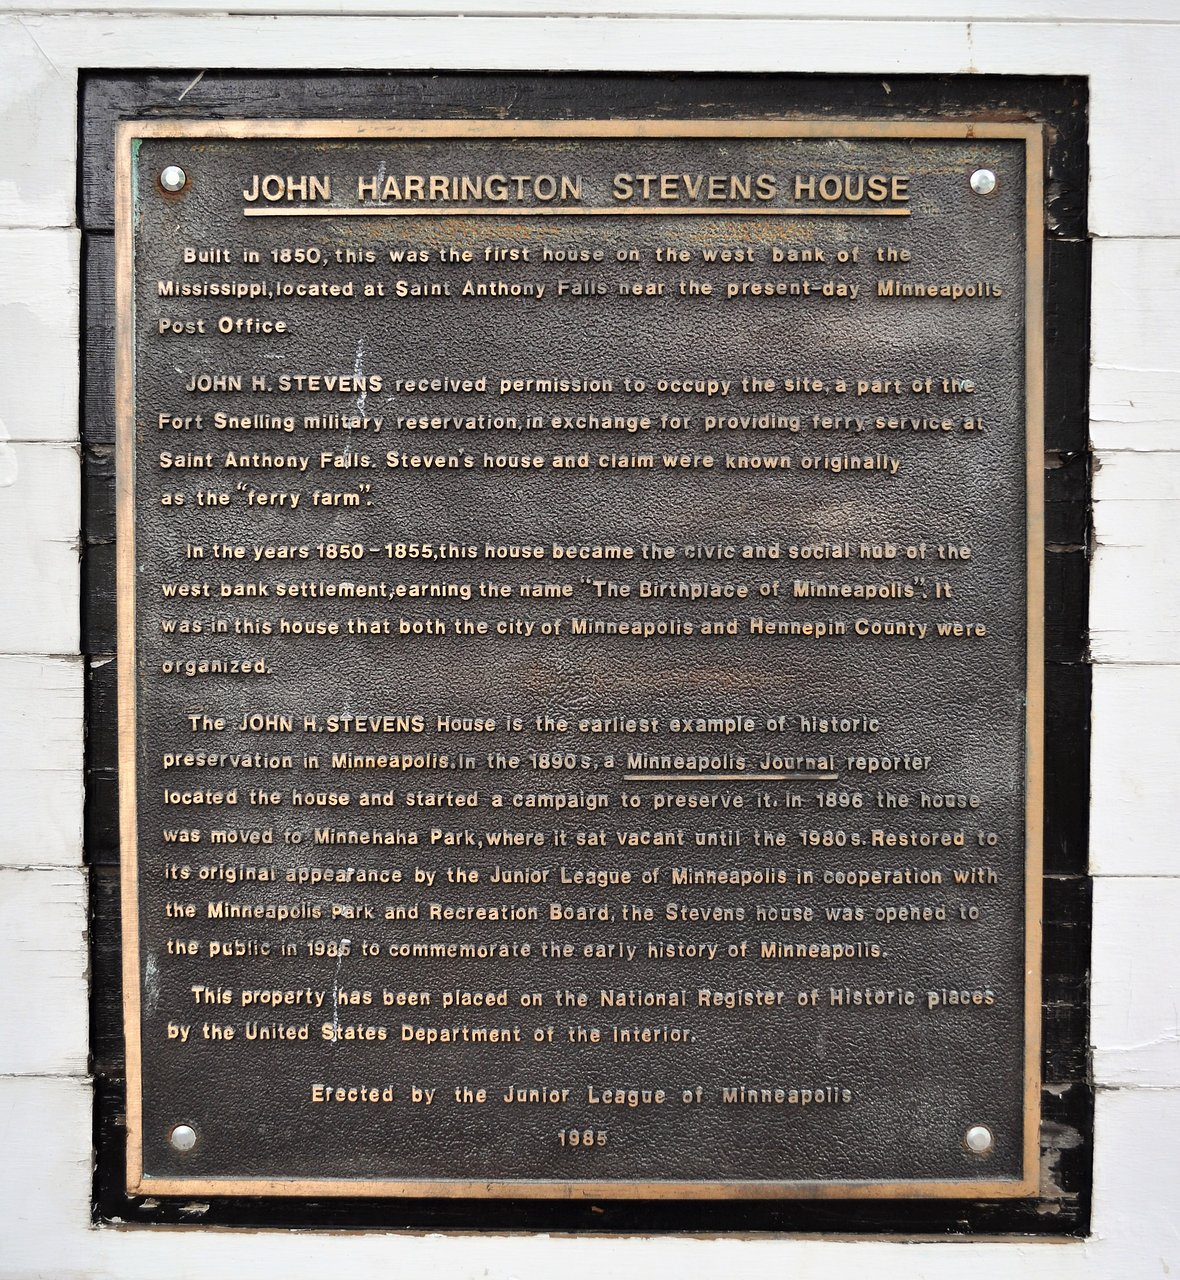 A plaque detailing the history of the house and its preservation